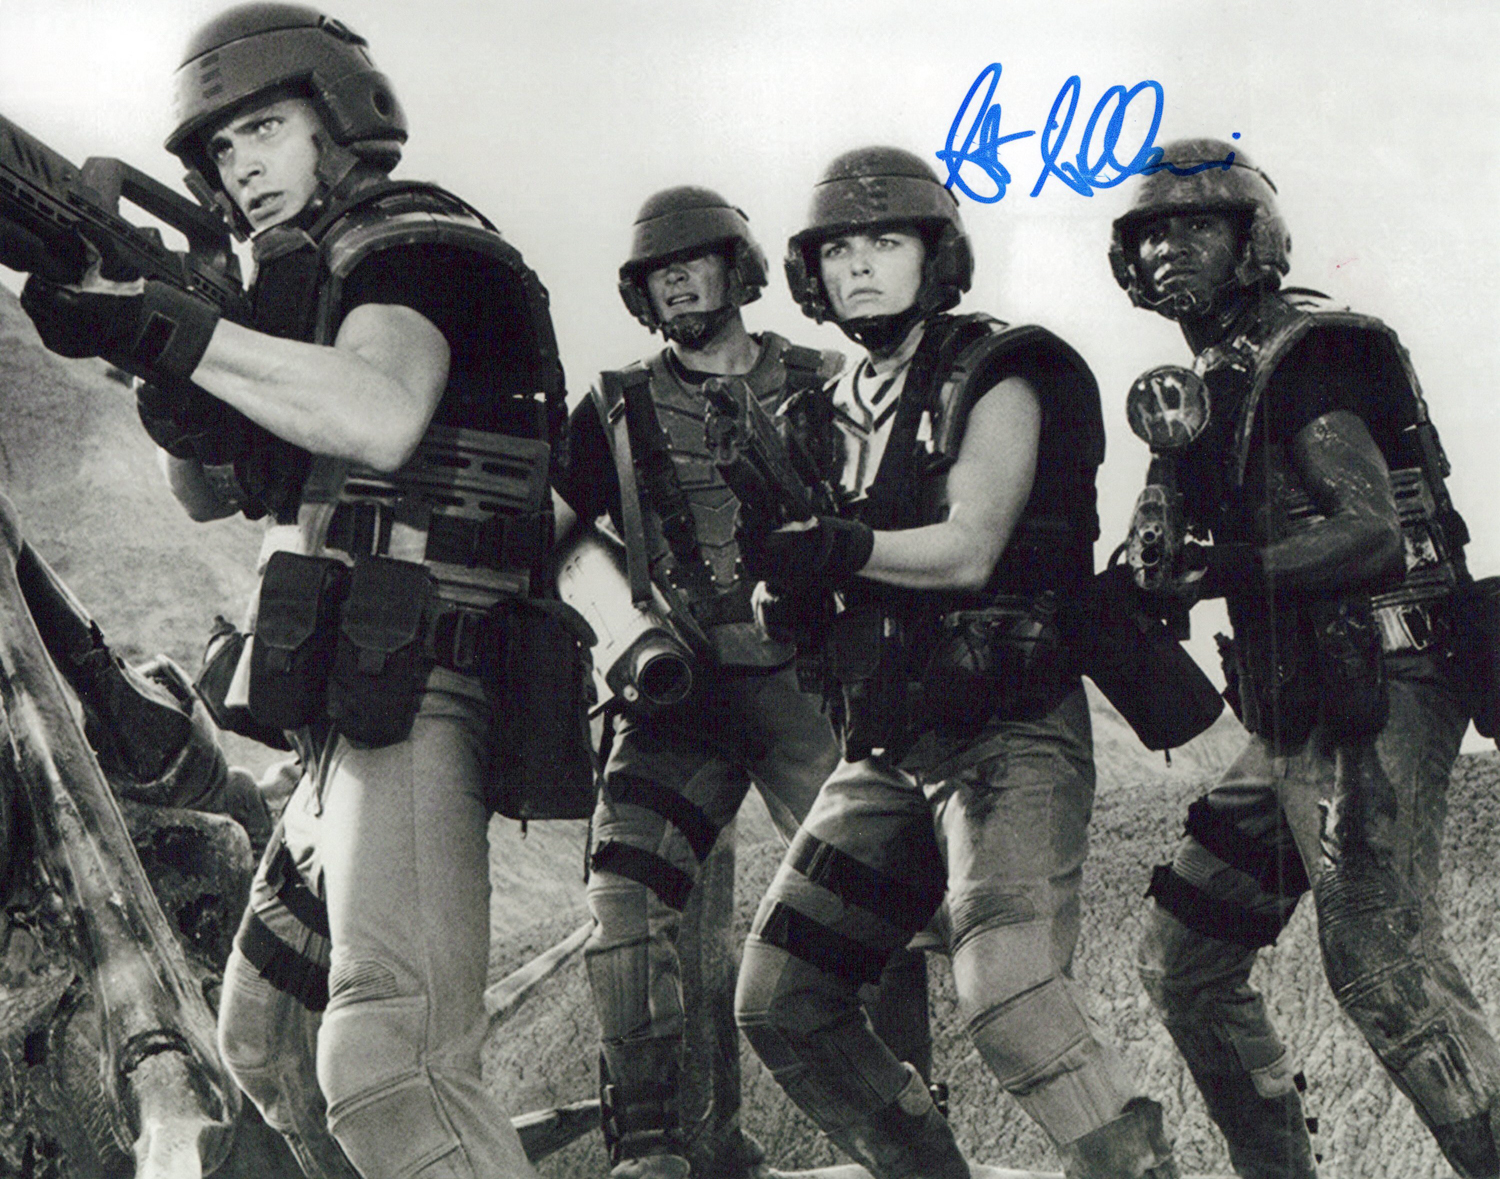 Seath Gilliam Original Autogramm auf Foto 20x25cm  - Starship Troopers